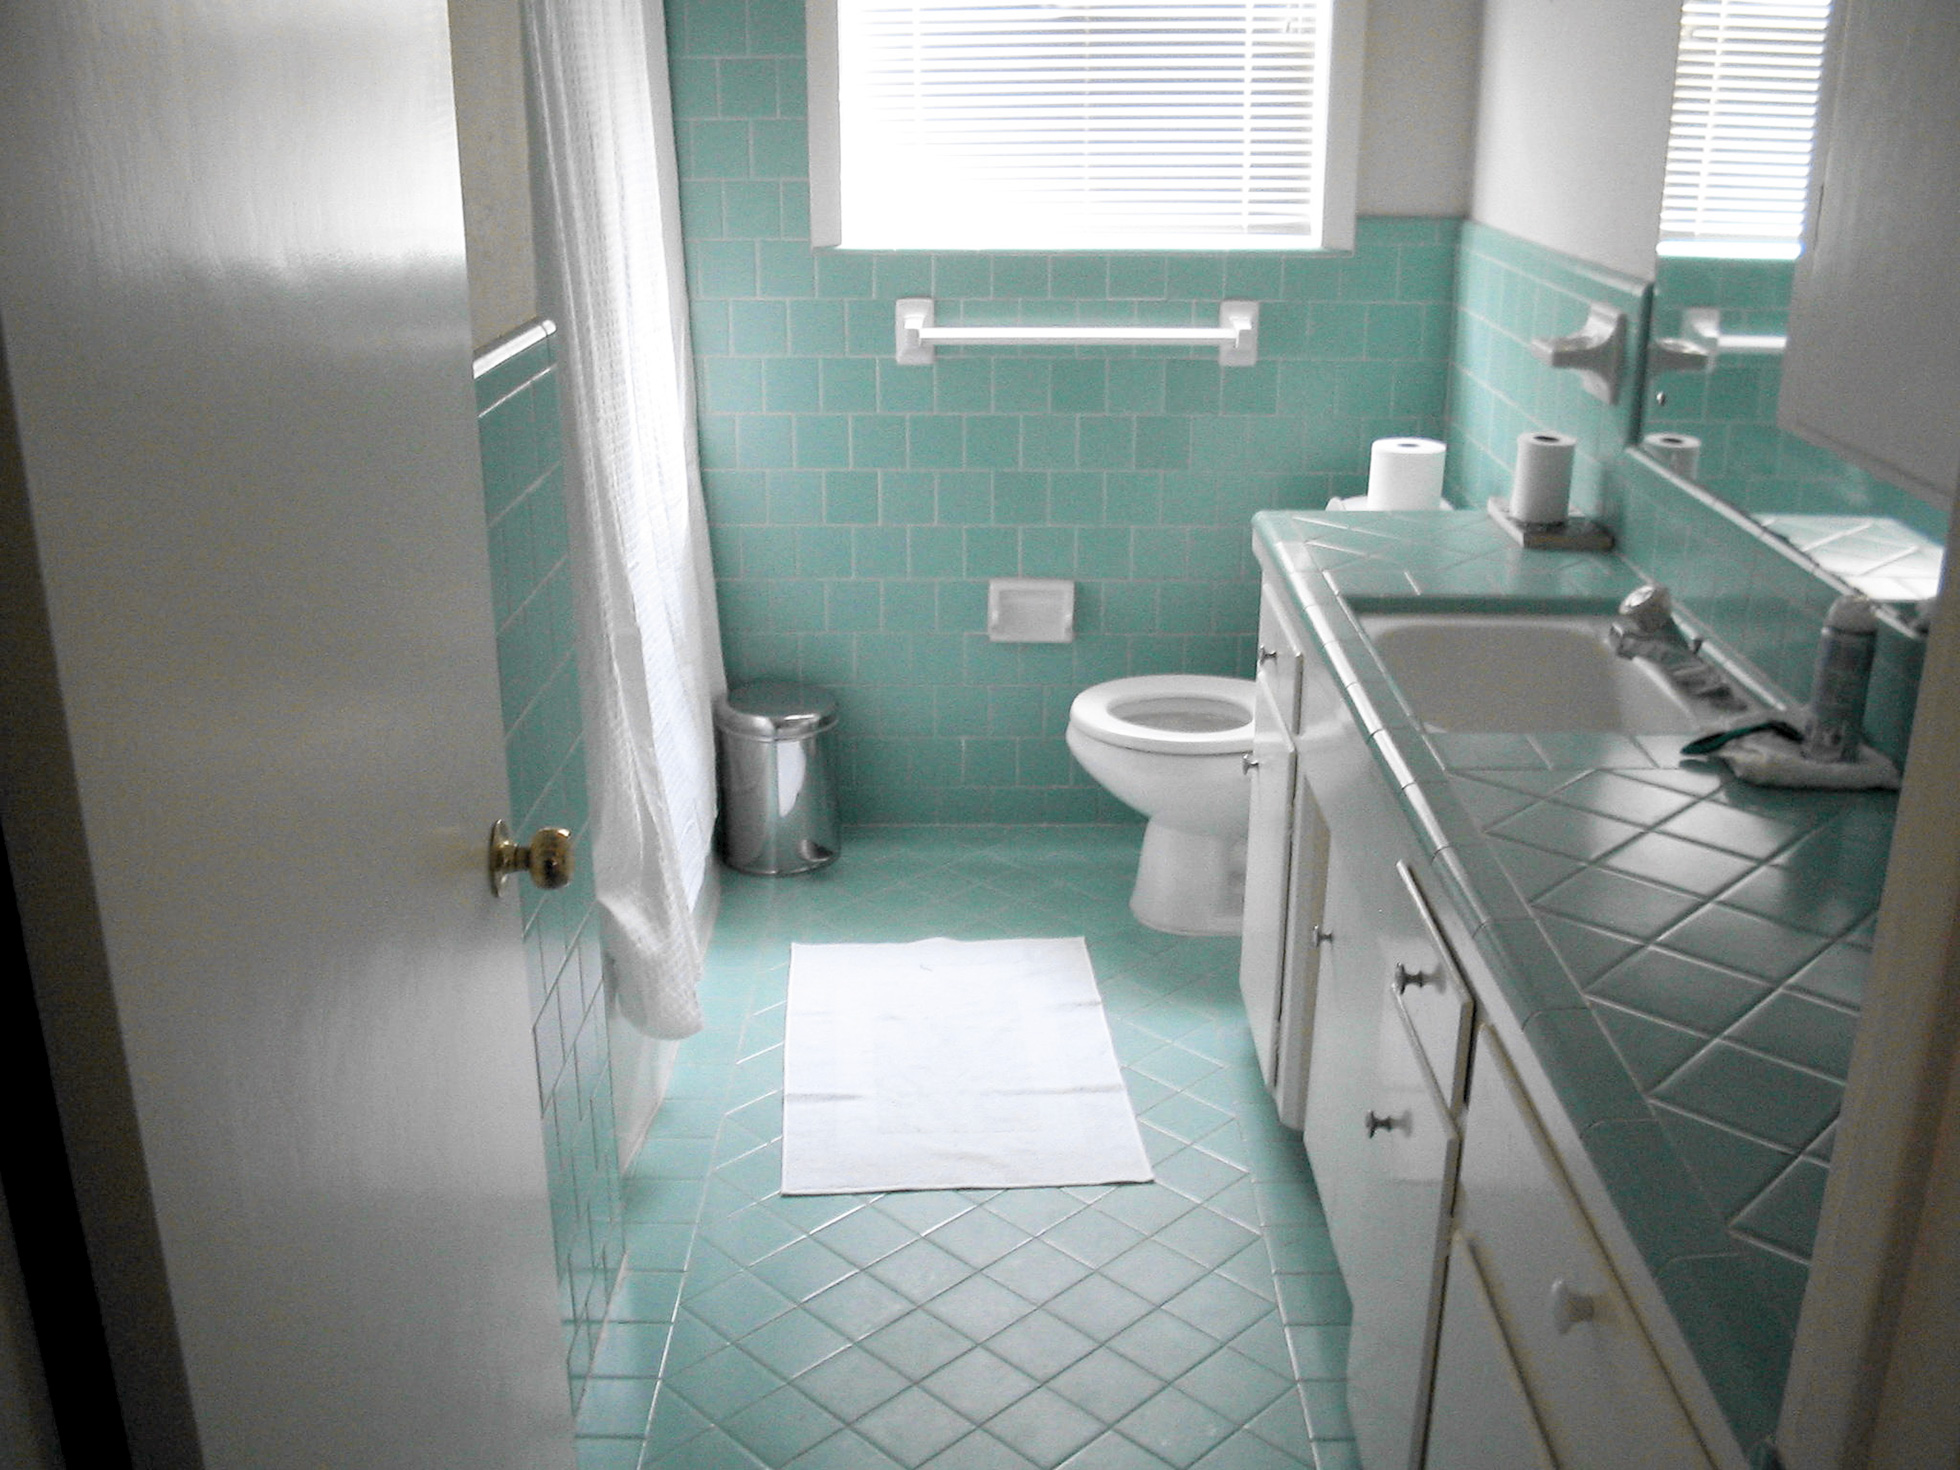 A contractor using your home's bathroom